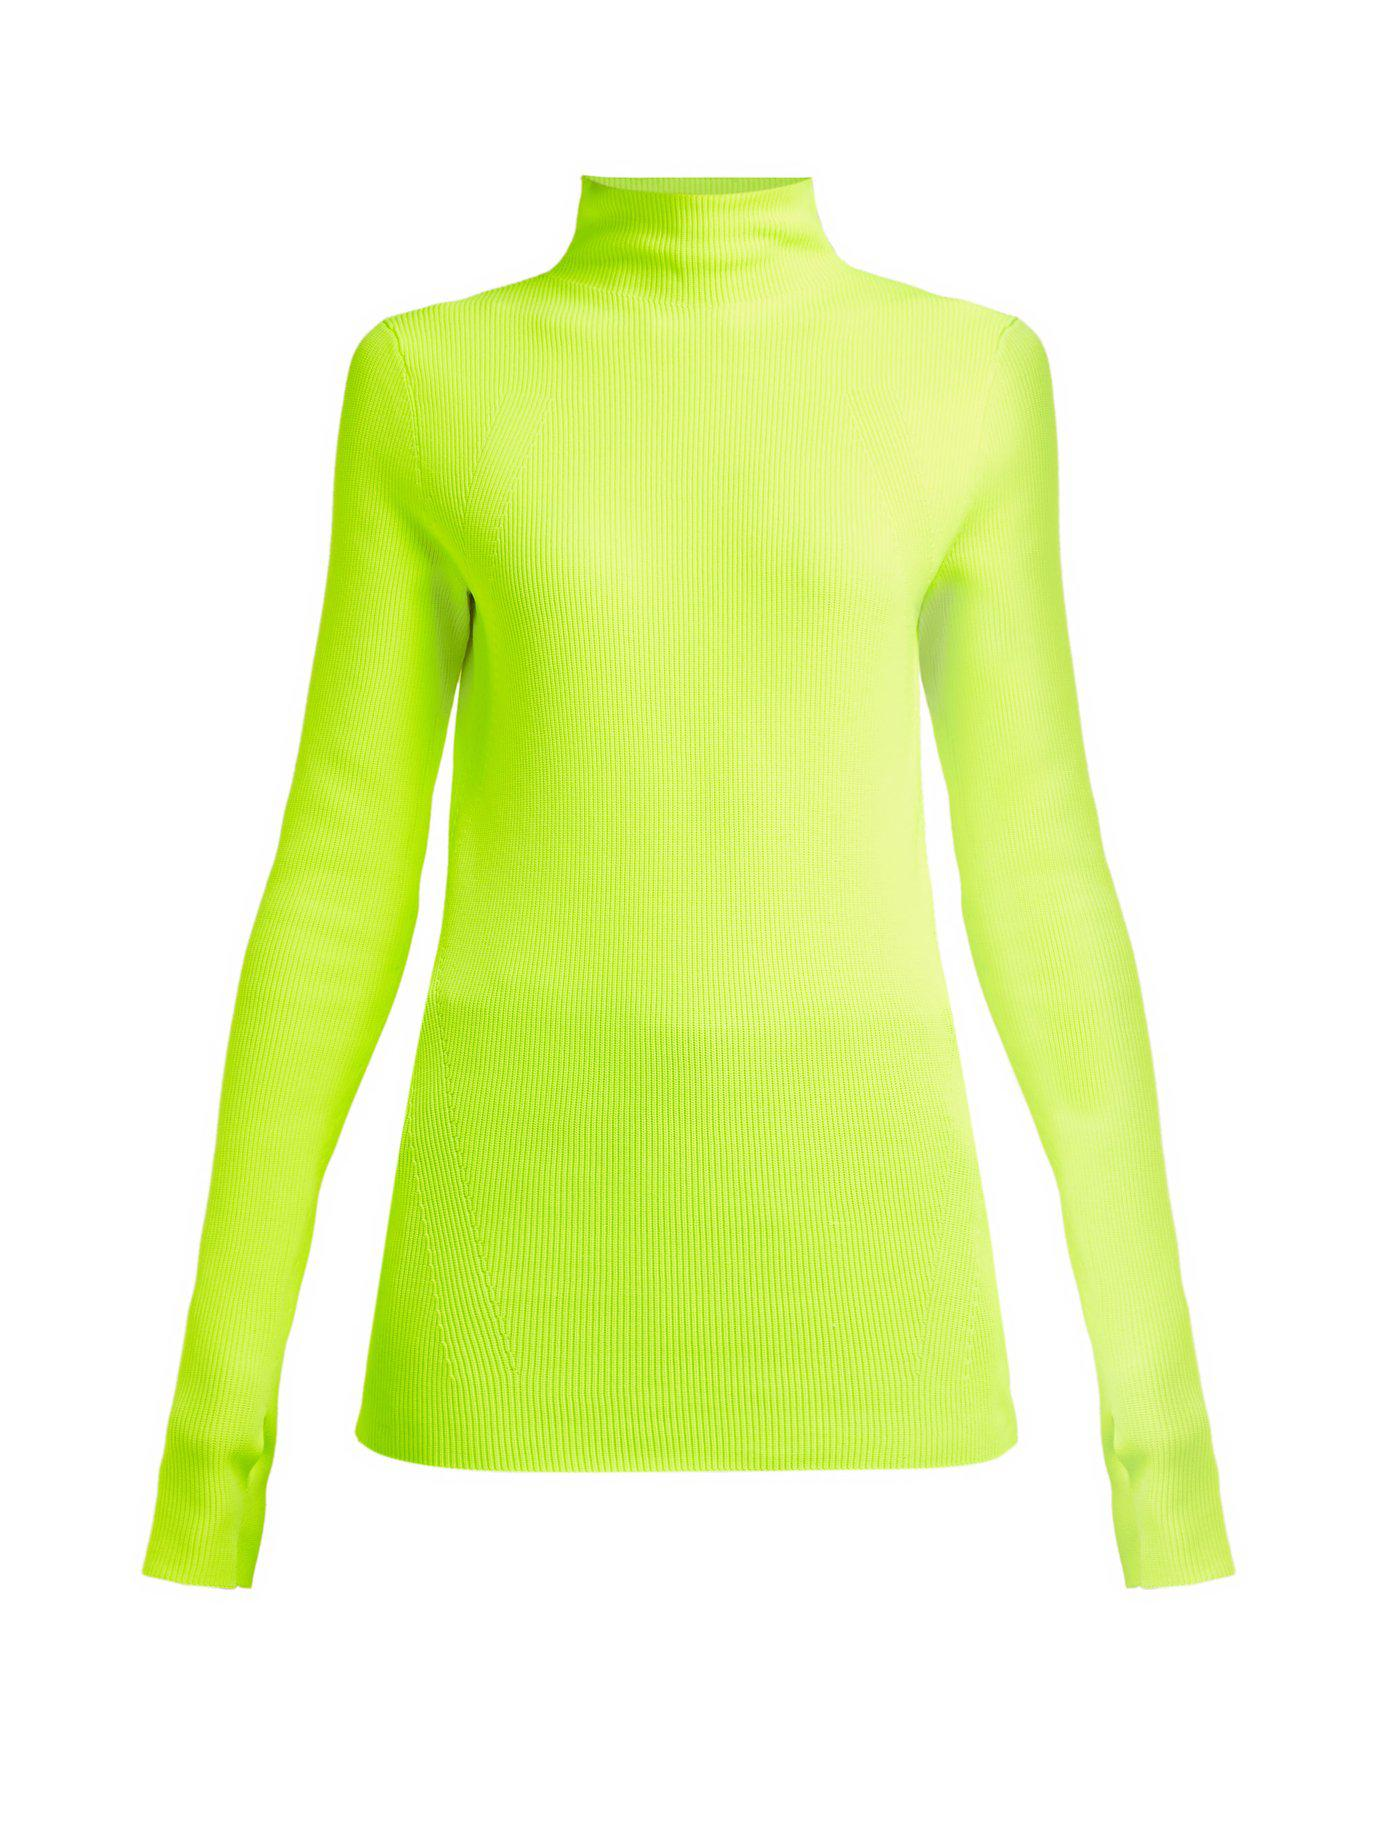 f8a9c812757def Lyst - Helmut Lang Essential Knit Top in Green - Save 33%